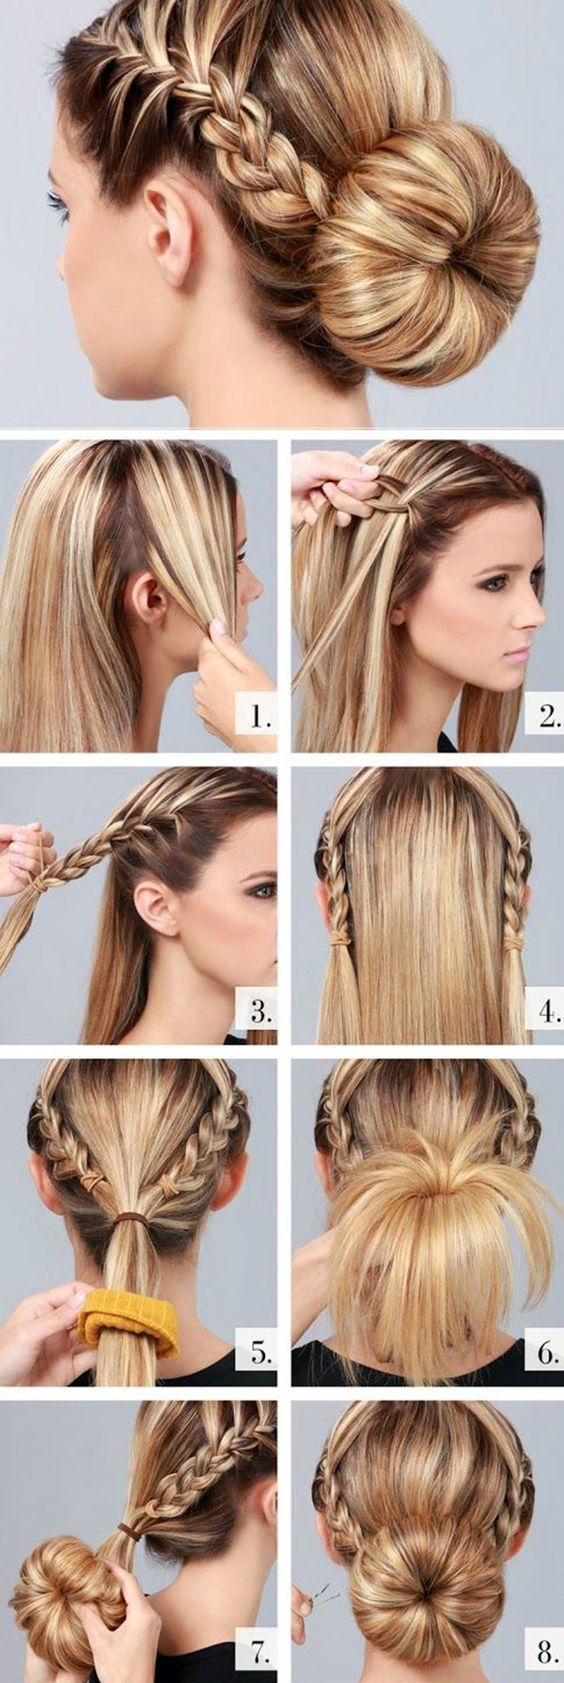 easy party hairstyles for long hair hair styles